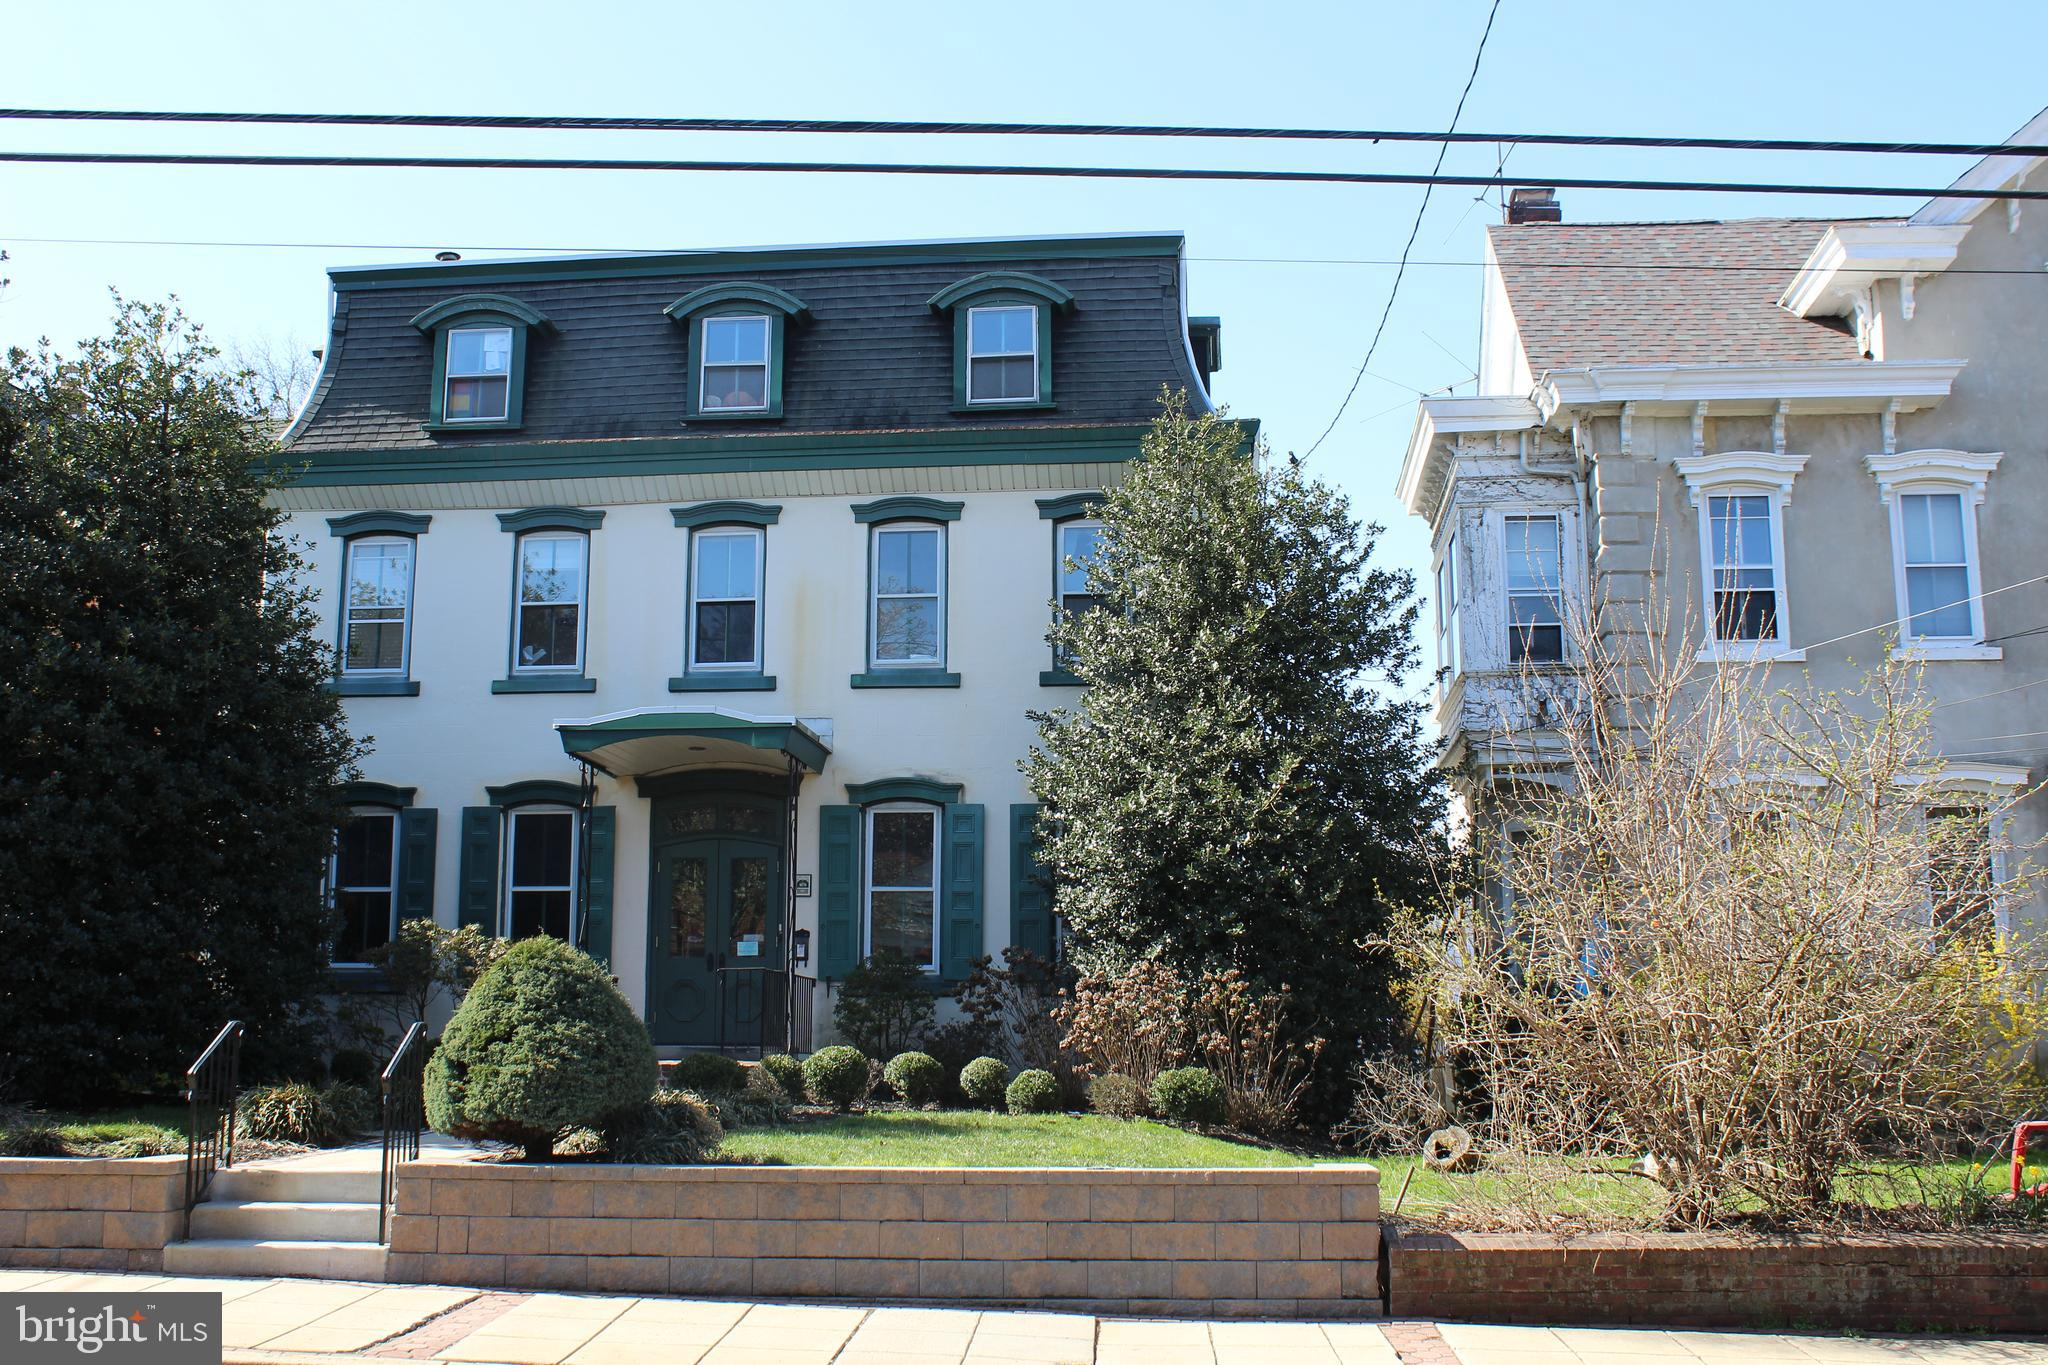 112 S MAIN STREET, NORTH WALES, Pennsylvania 19454, 2 Bedrooms Bedrooms, ,3 BathroomsBathrooms,Single Family,For Sale,112 S MAIN STREET,PAMC683078